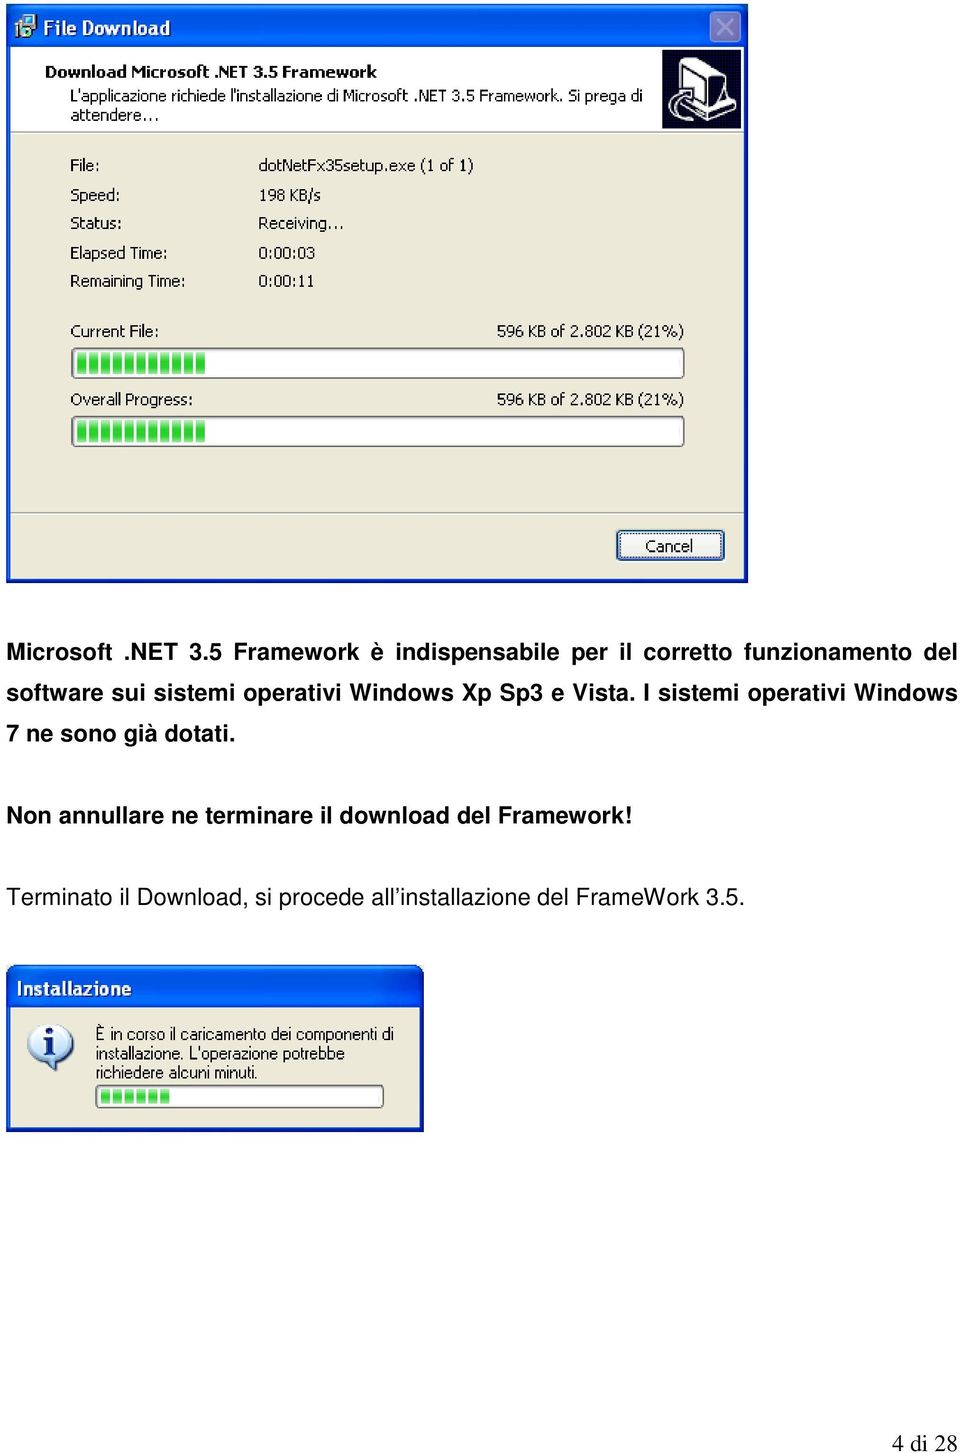 sistemi operativi Windows Xp Sp3 e Vista.